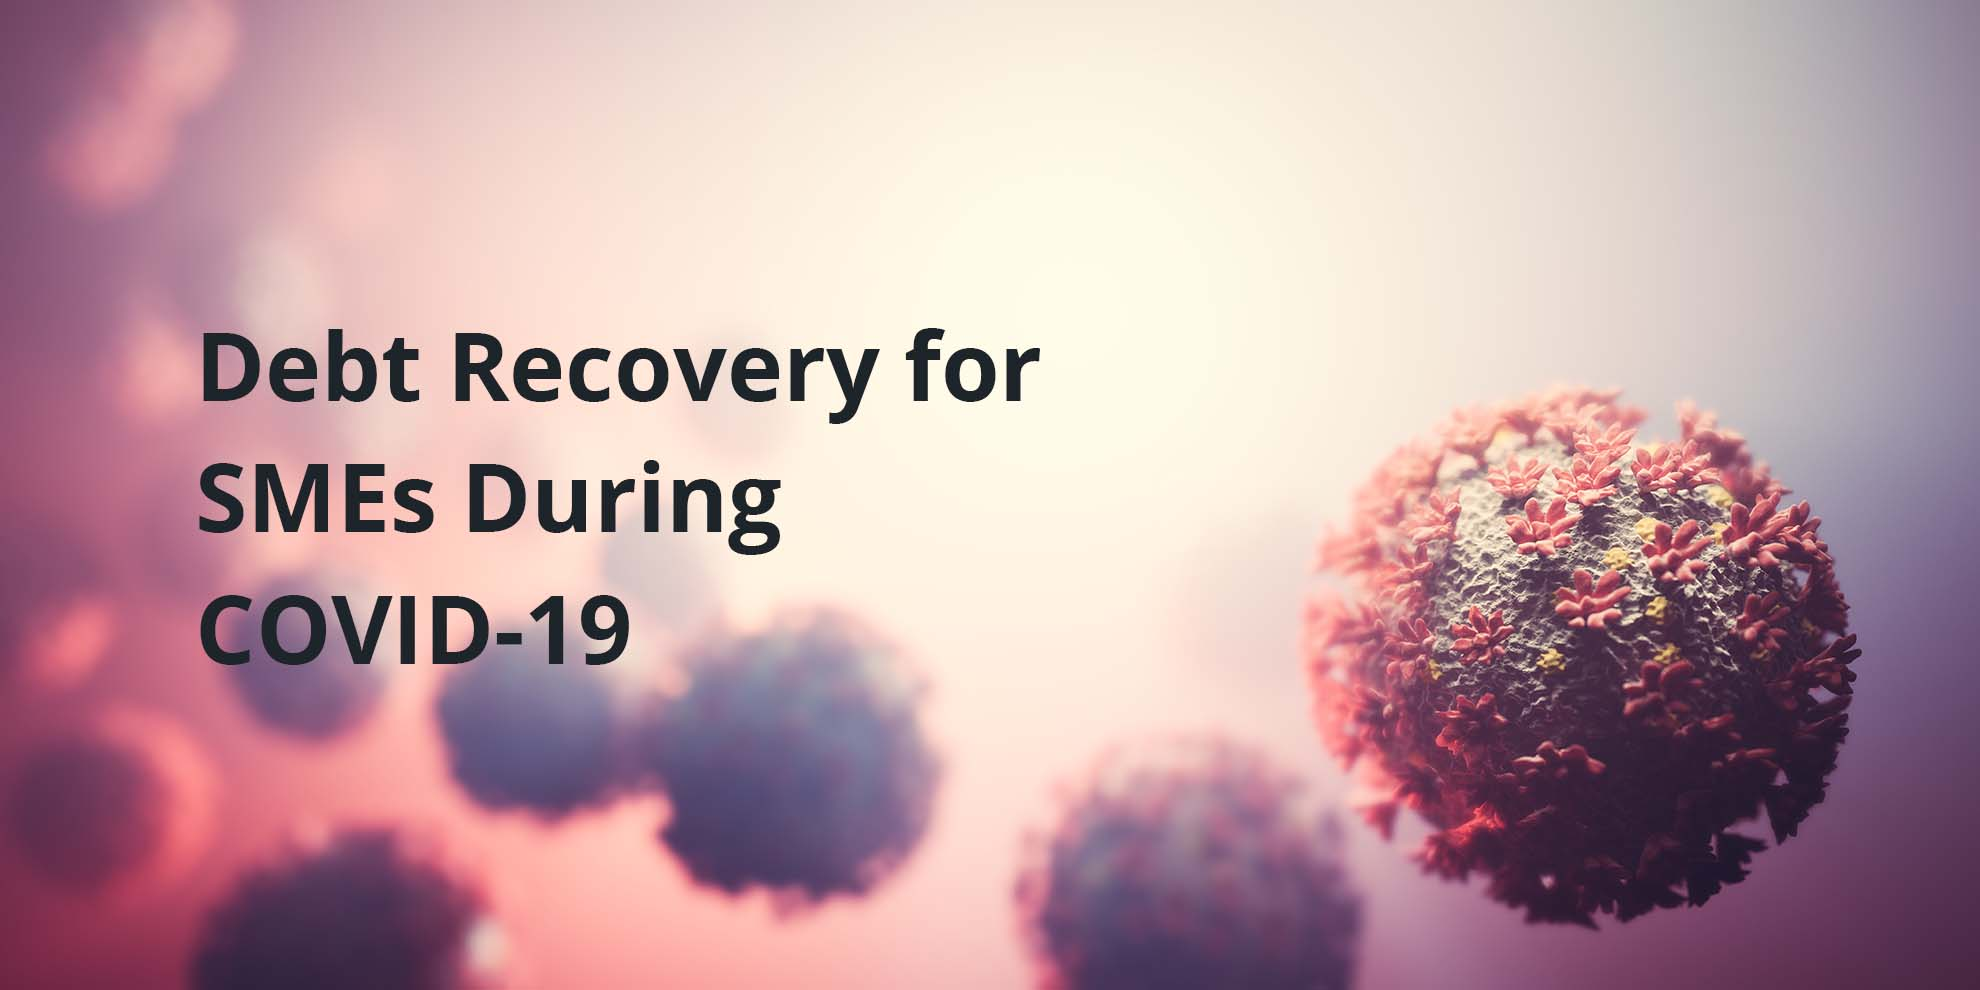 Debt Recovery for SMEs During COVID-19